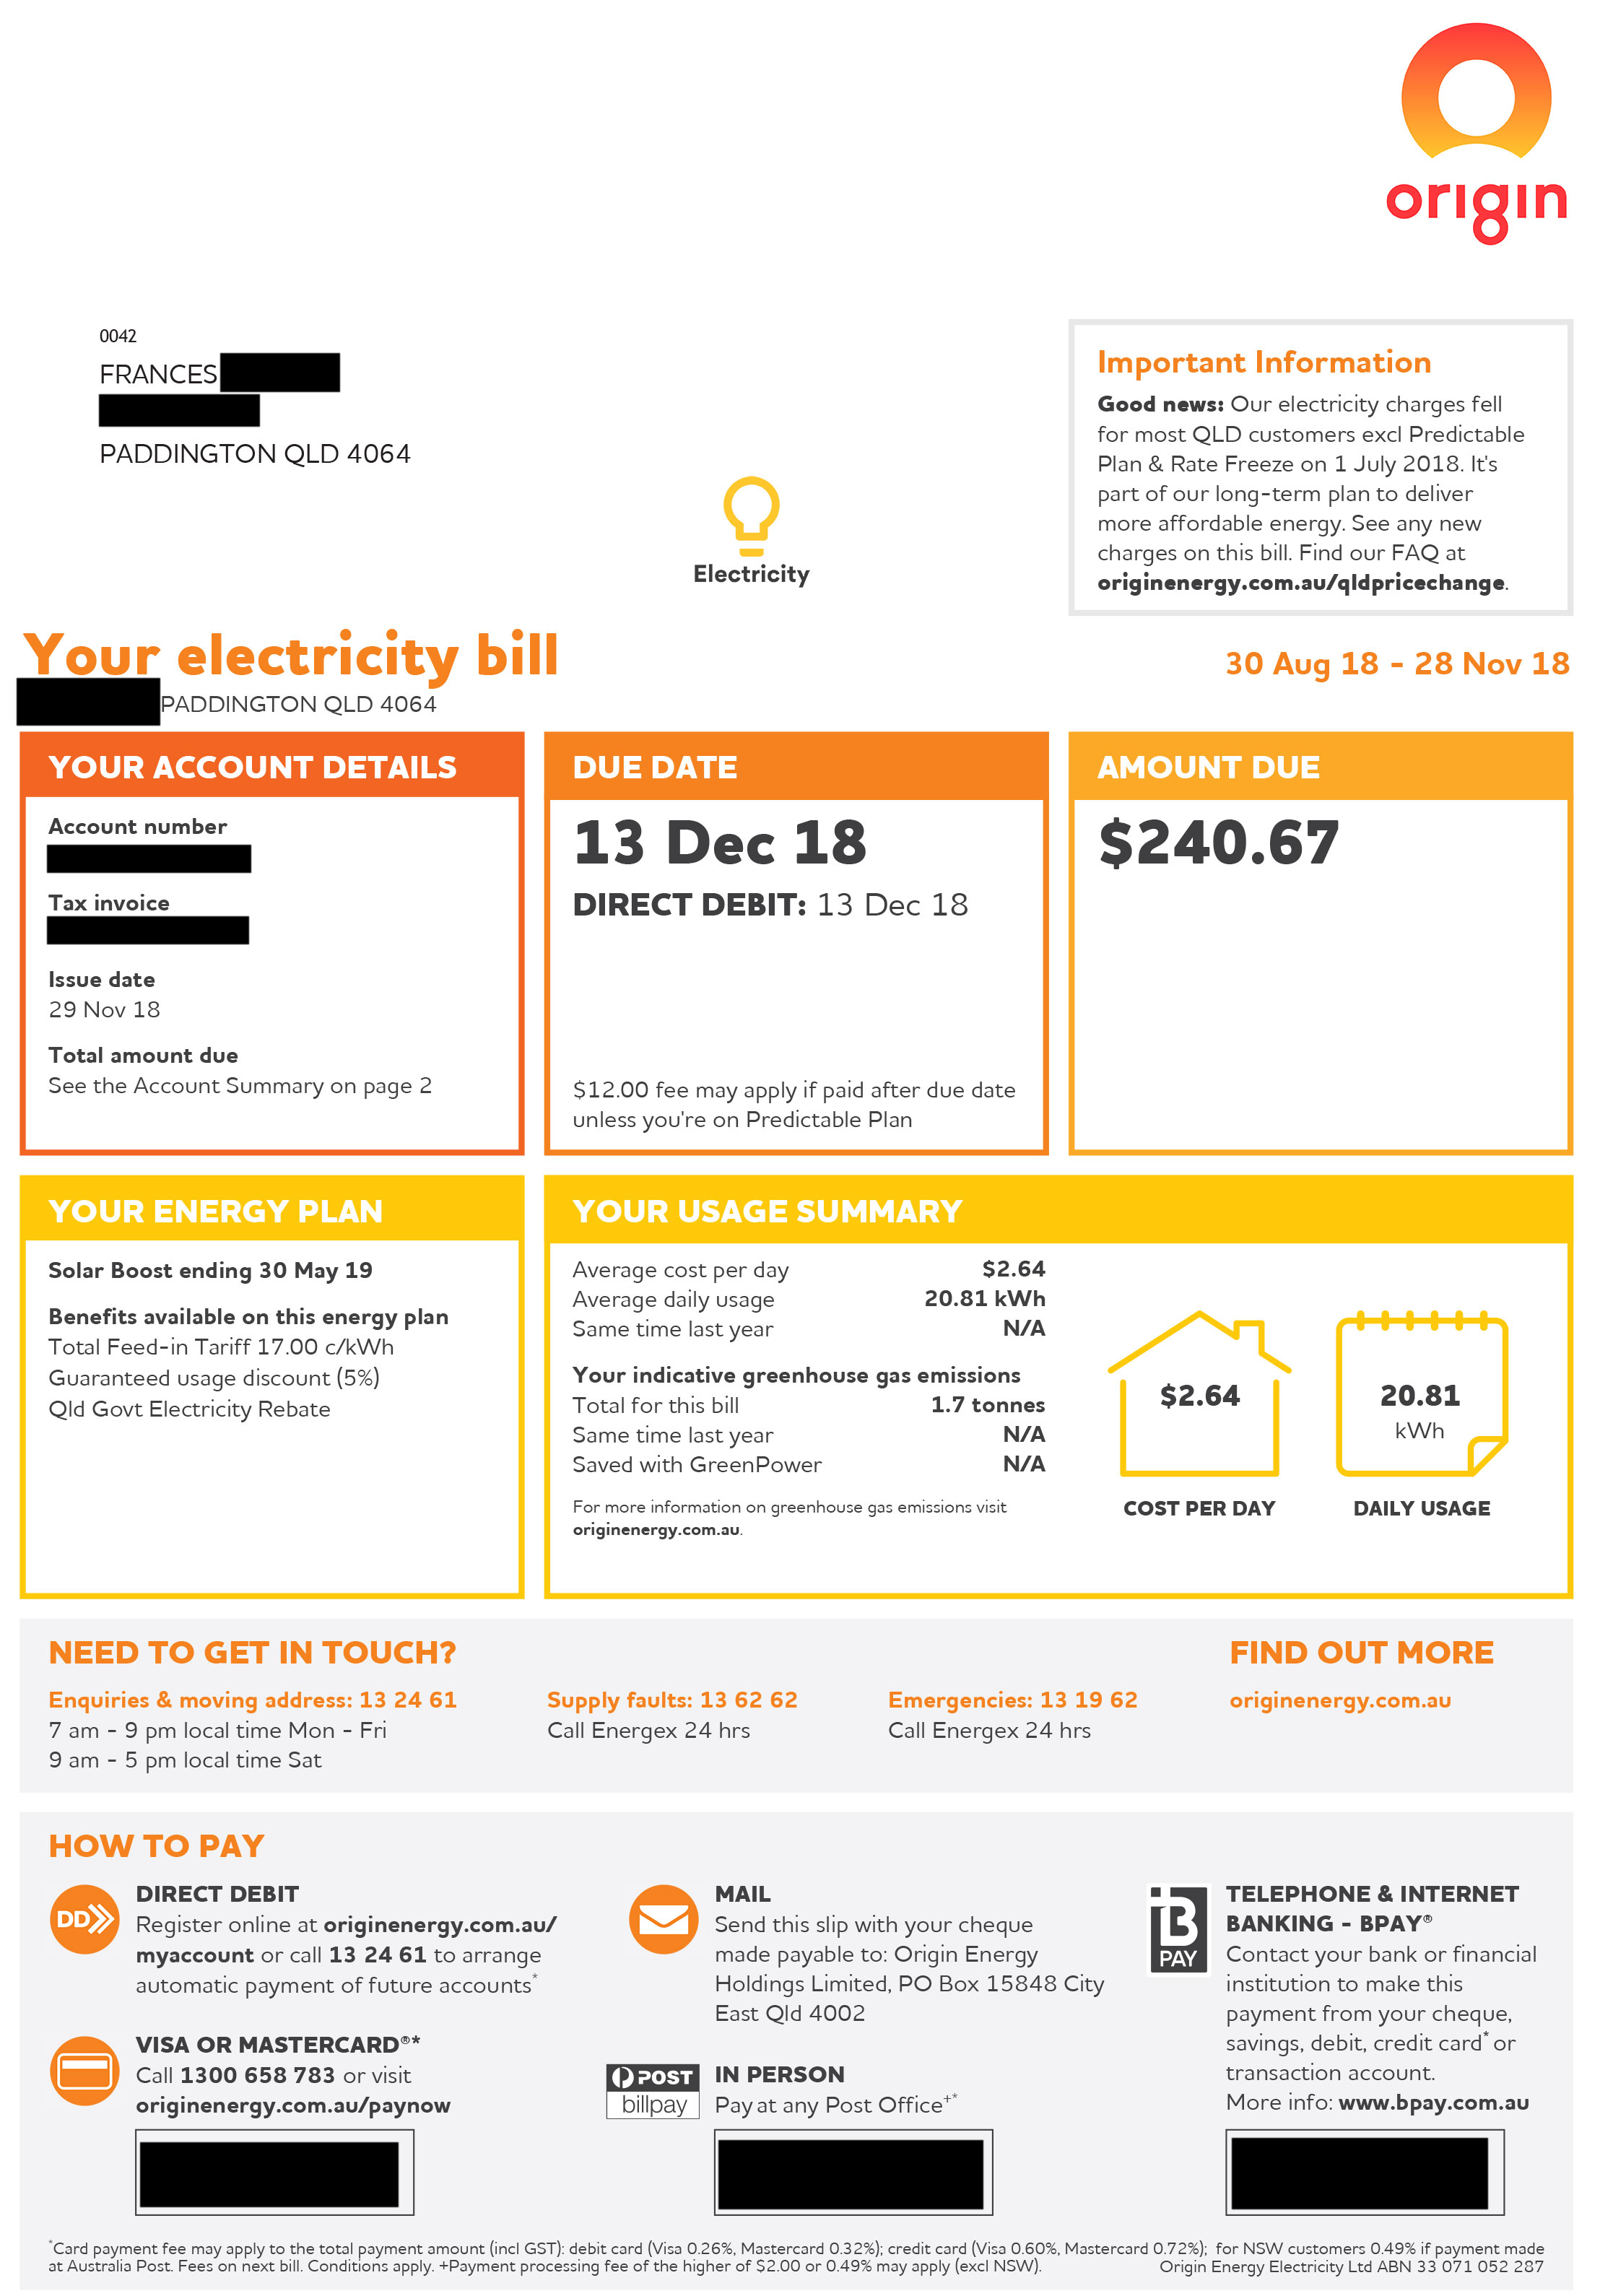 Frances - Origin Energy Bill